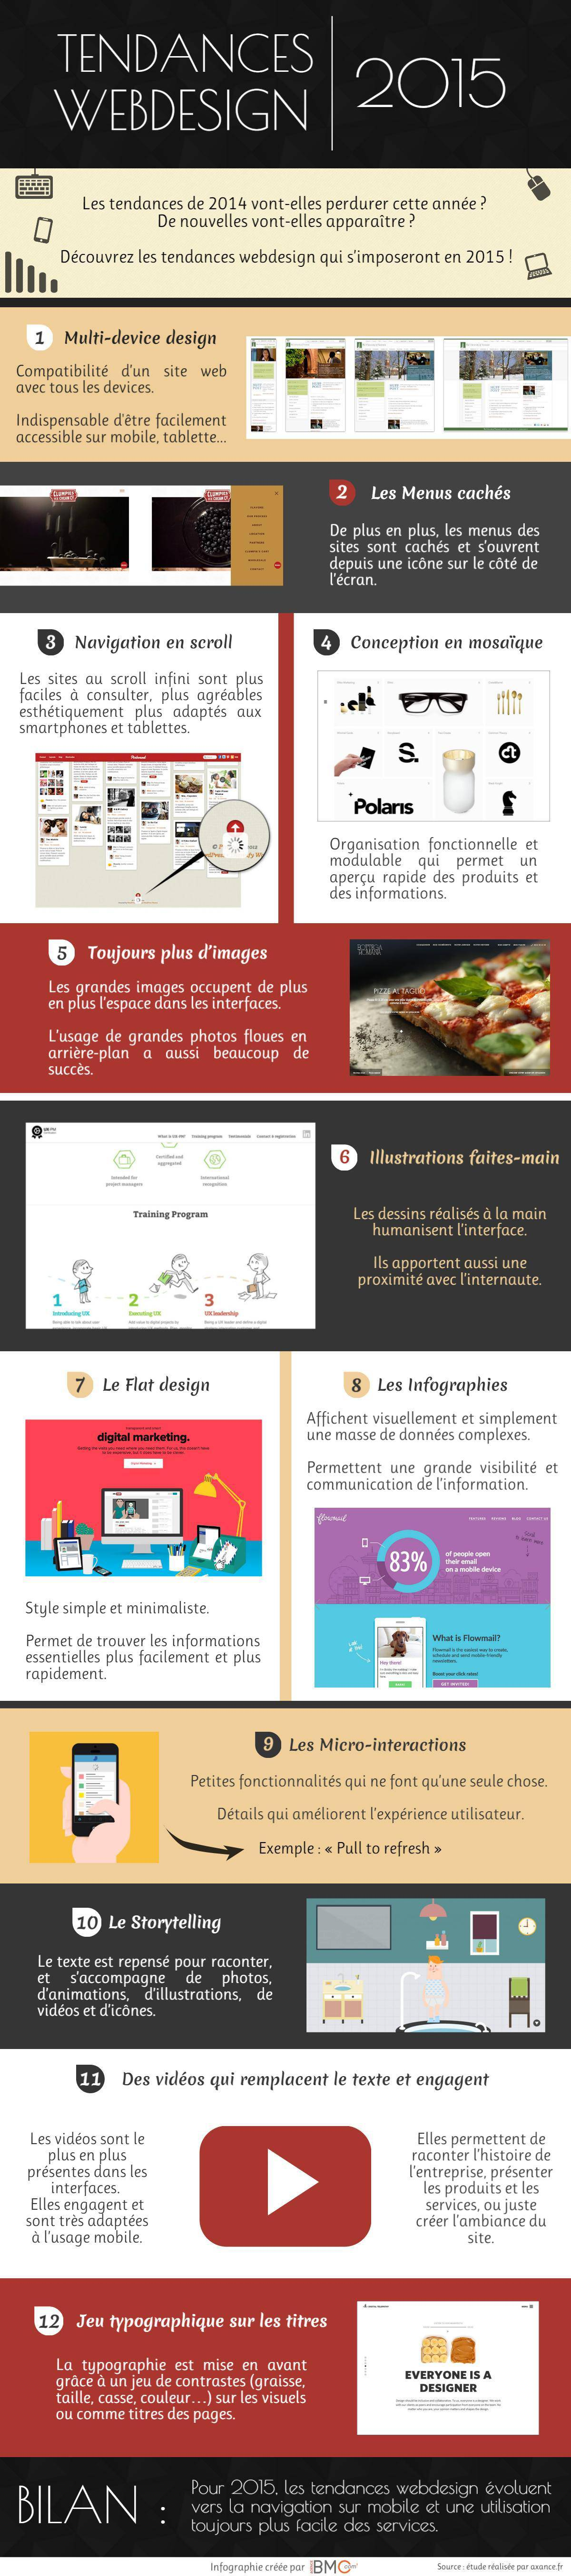 tendanceswebdesign2015